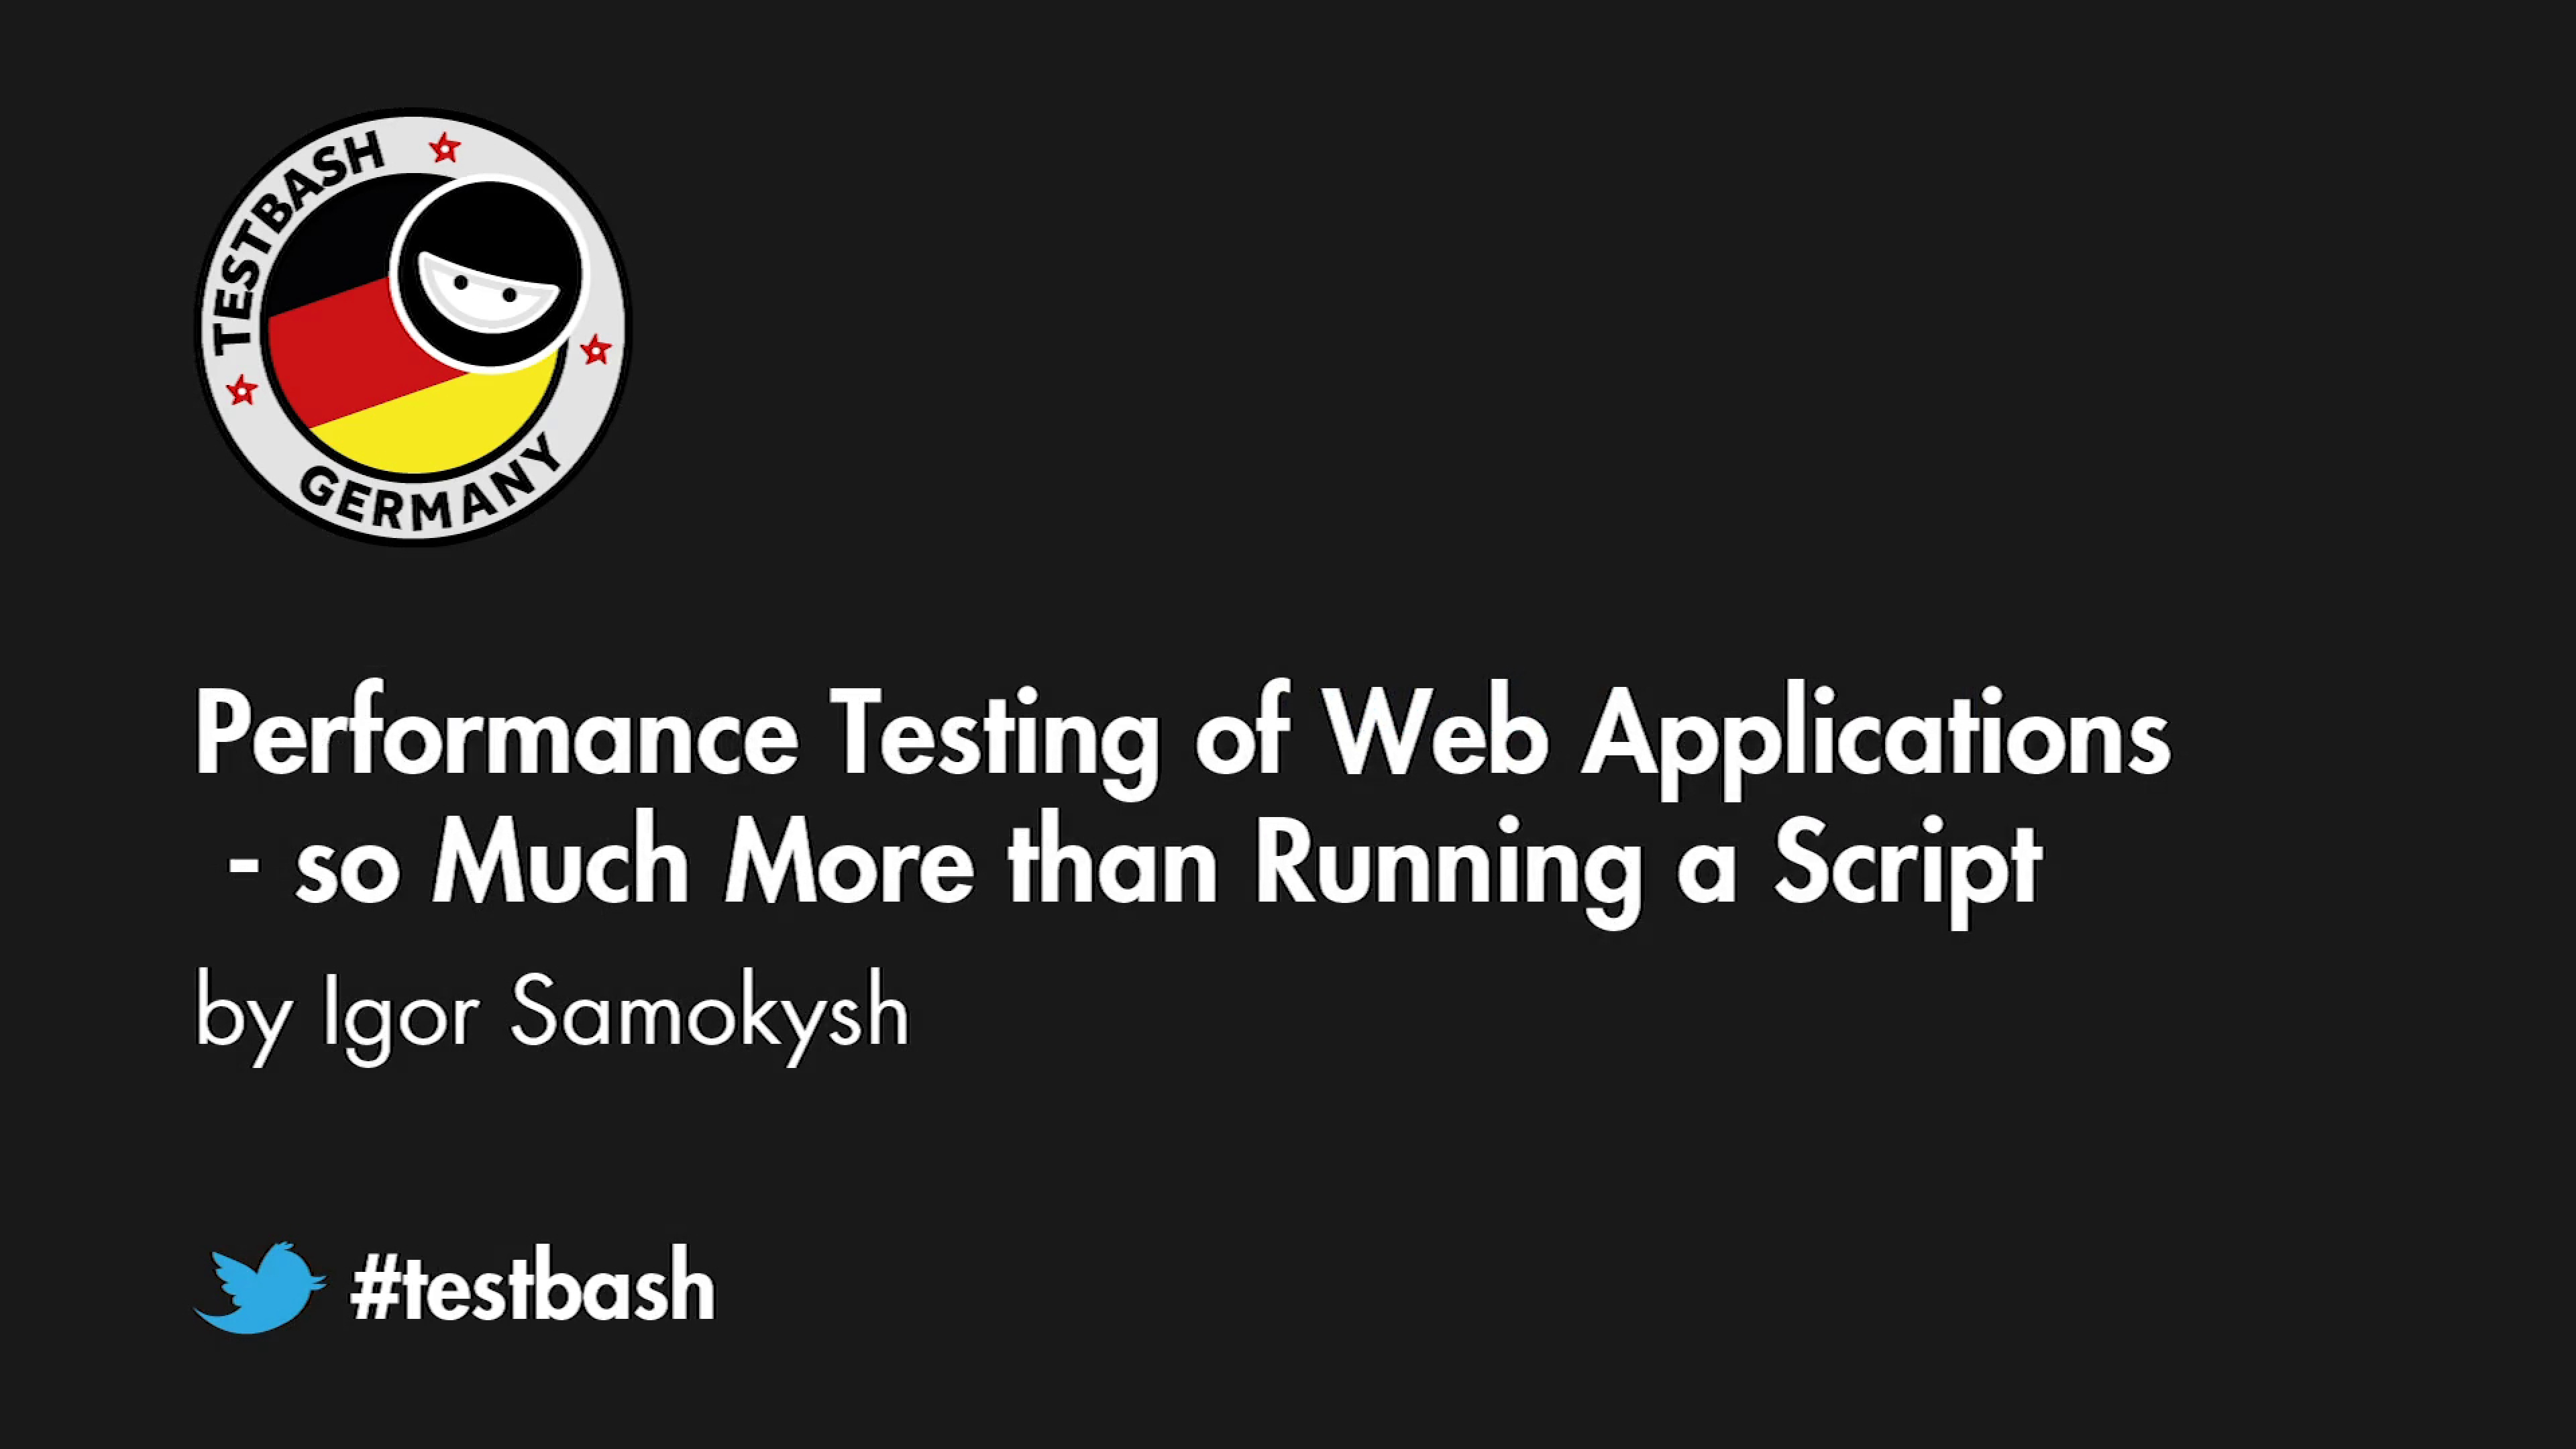 Performance Testing of Web Applications: So Much More than Running a Script - Igor Samokysh